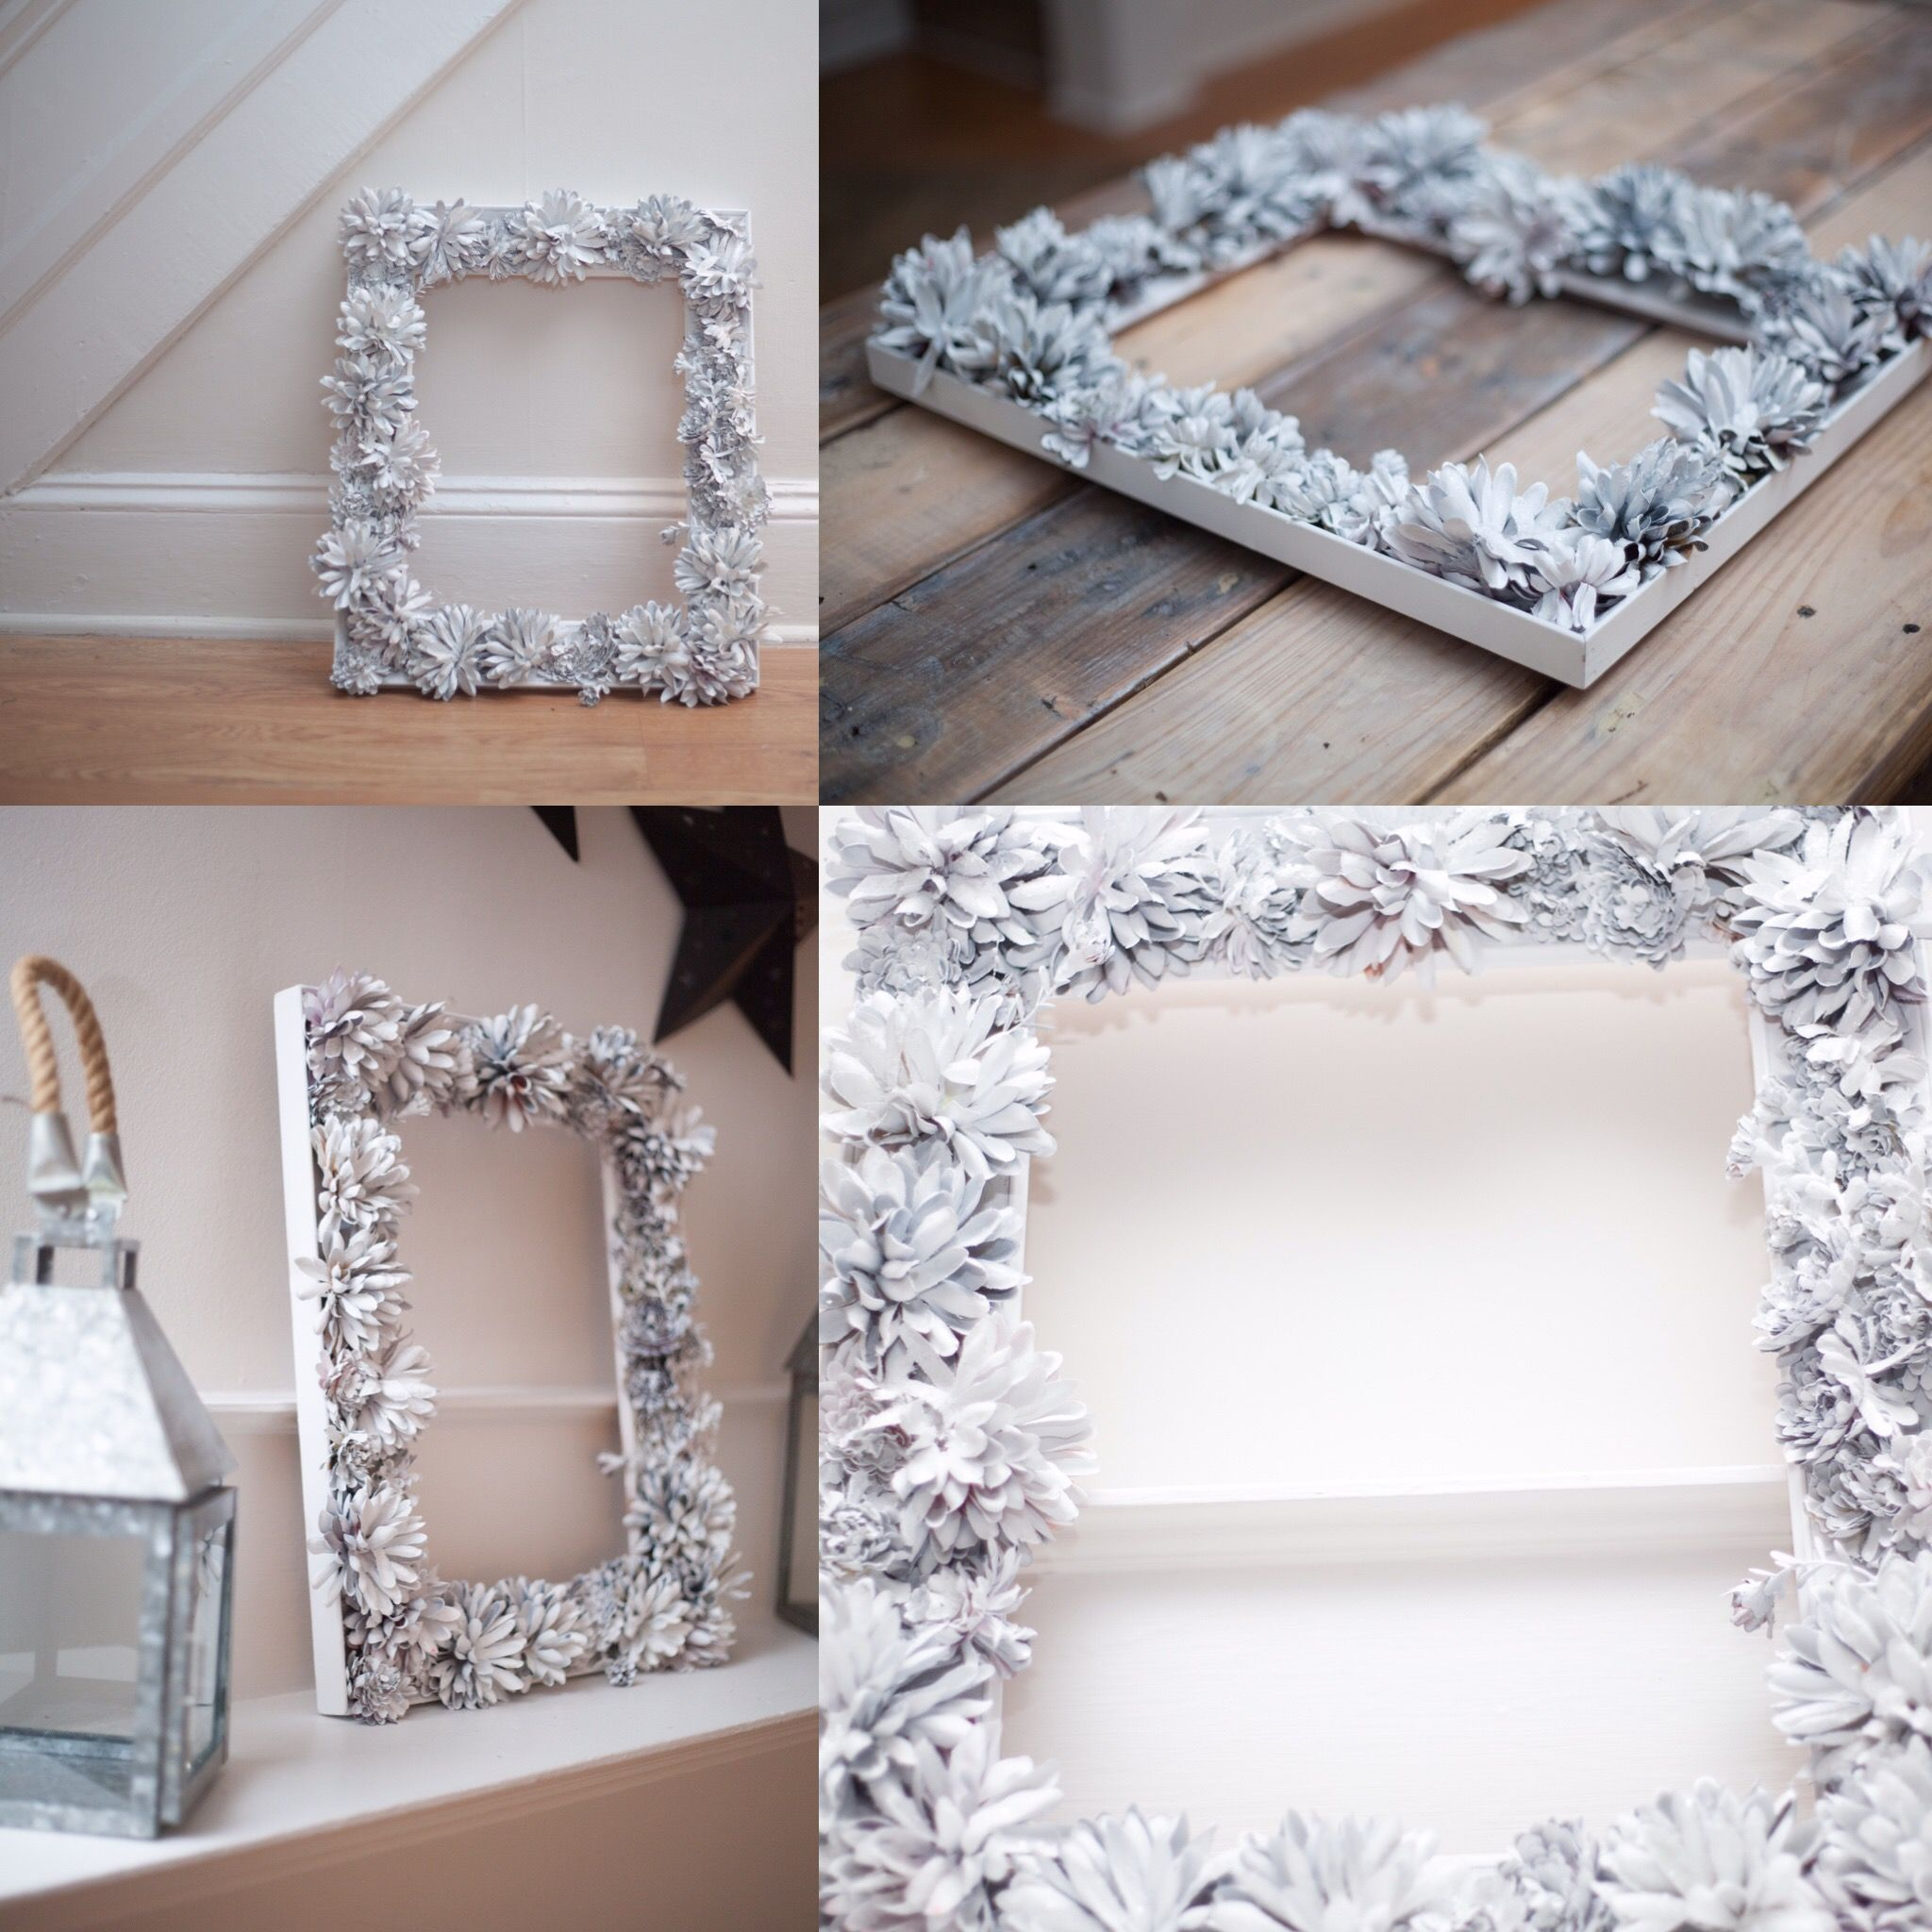 Little arts and crafts project.  Fake flowers, an old picture frame, glue and spray paint.